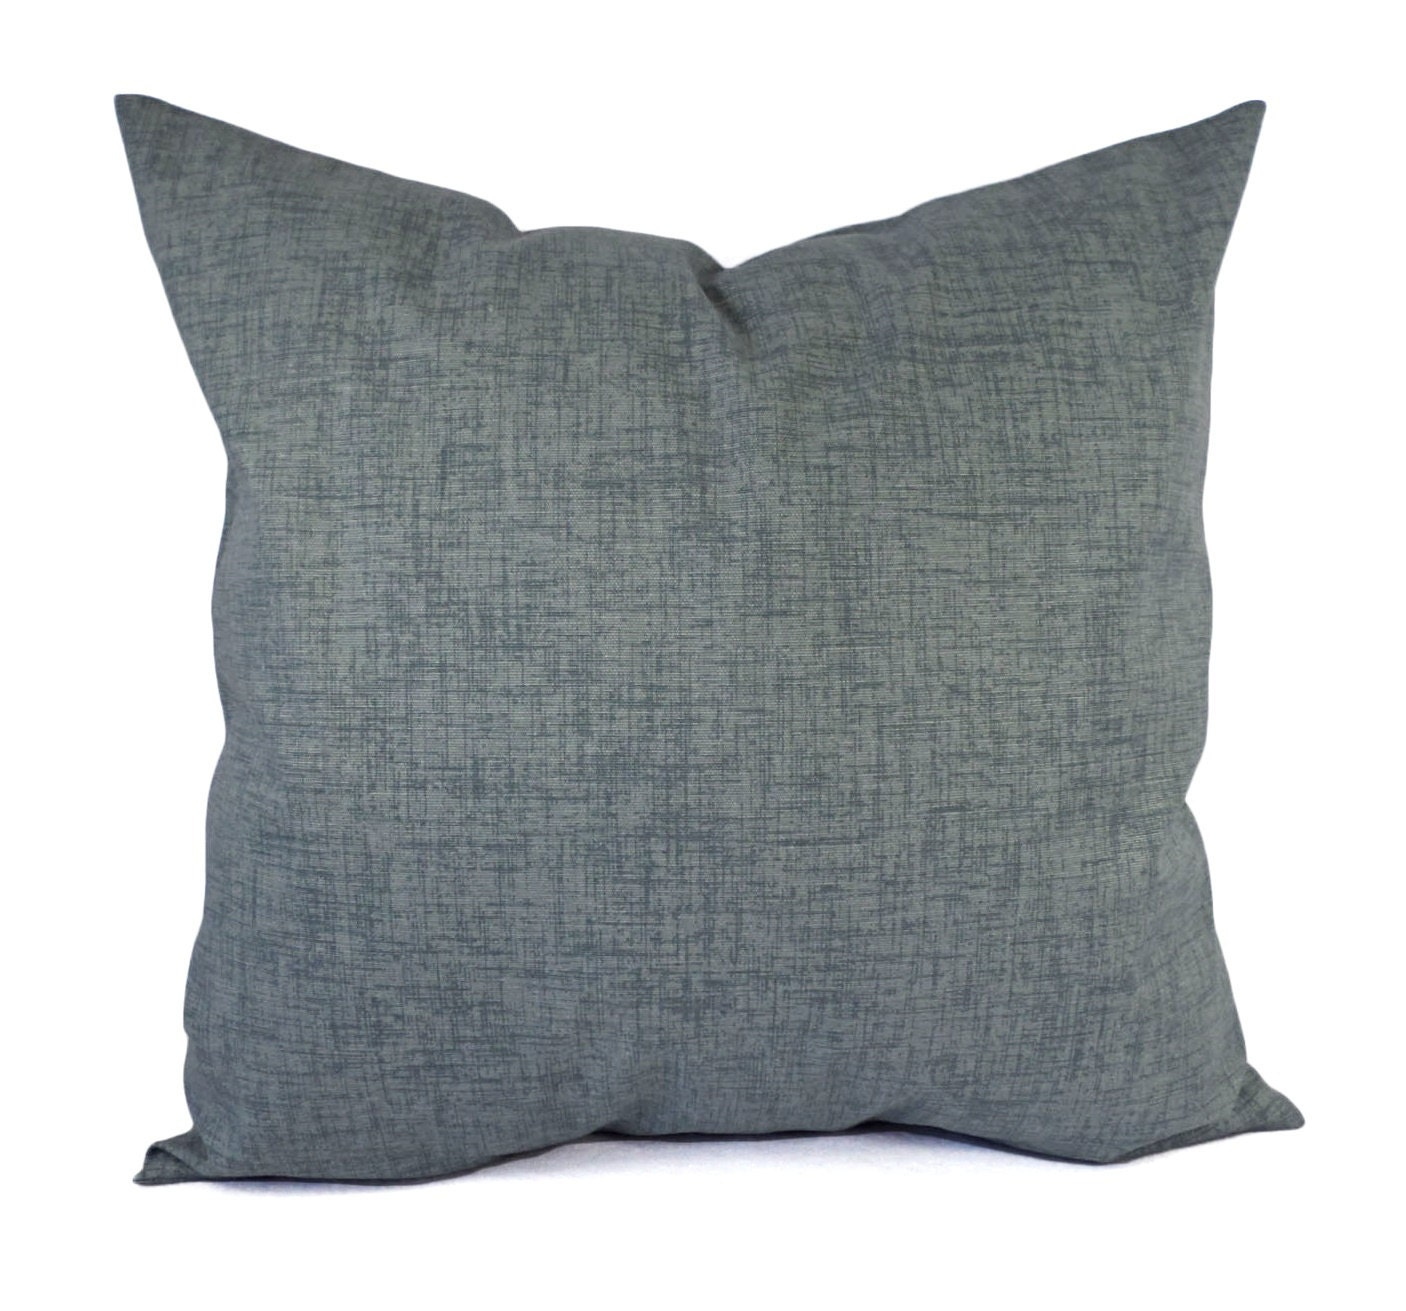 Two Pillow Covers Grey Throw Pillows Solid Pillow Cover